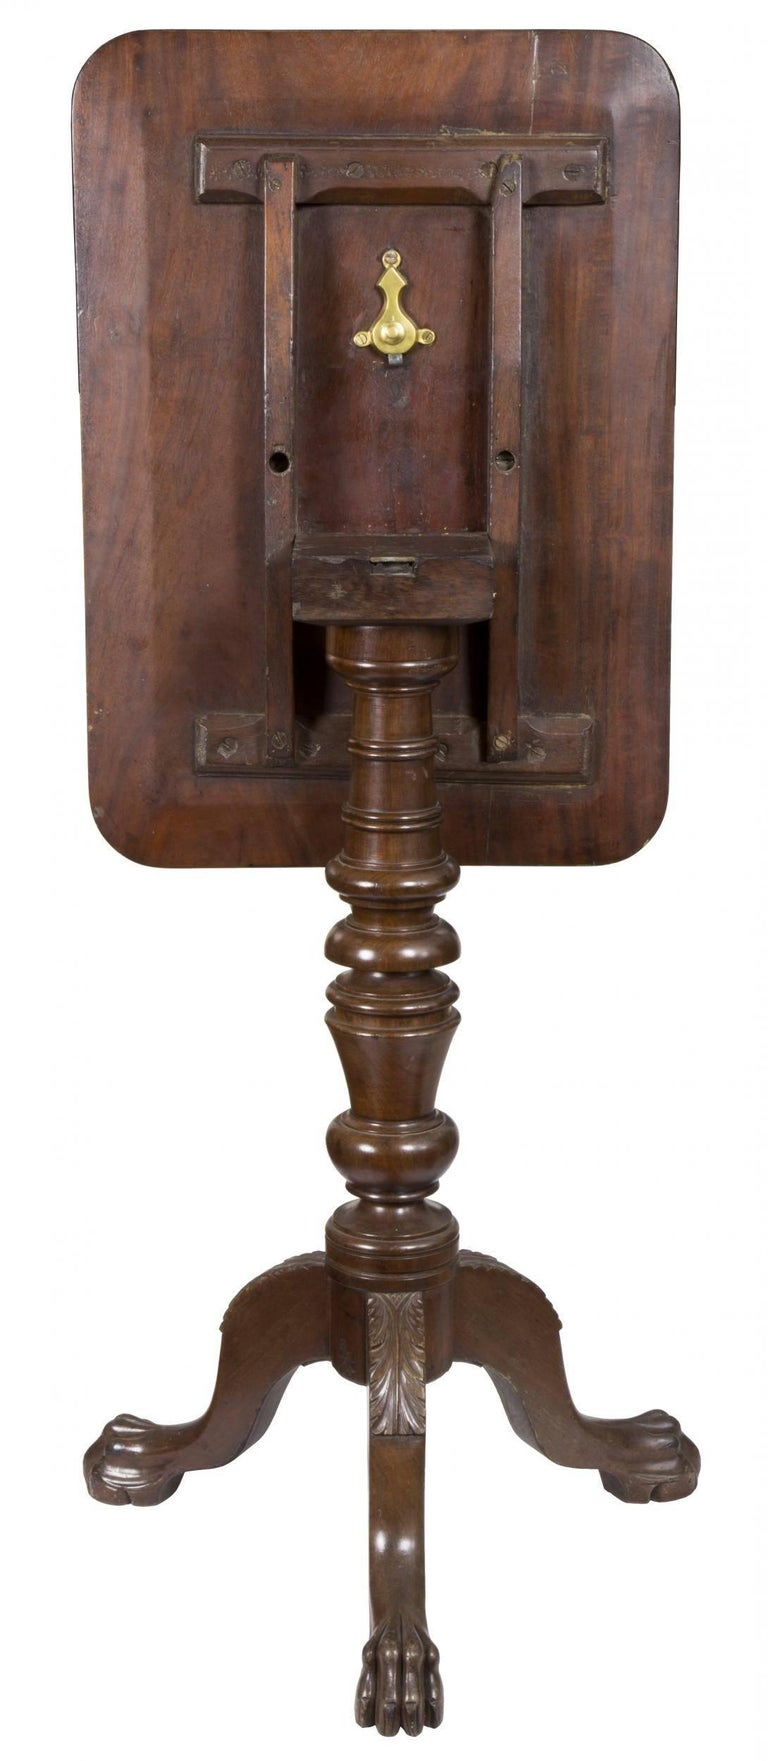 Mahogany Classical Candle Stand, American, circa 1820 For Sale 3